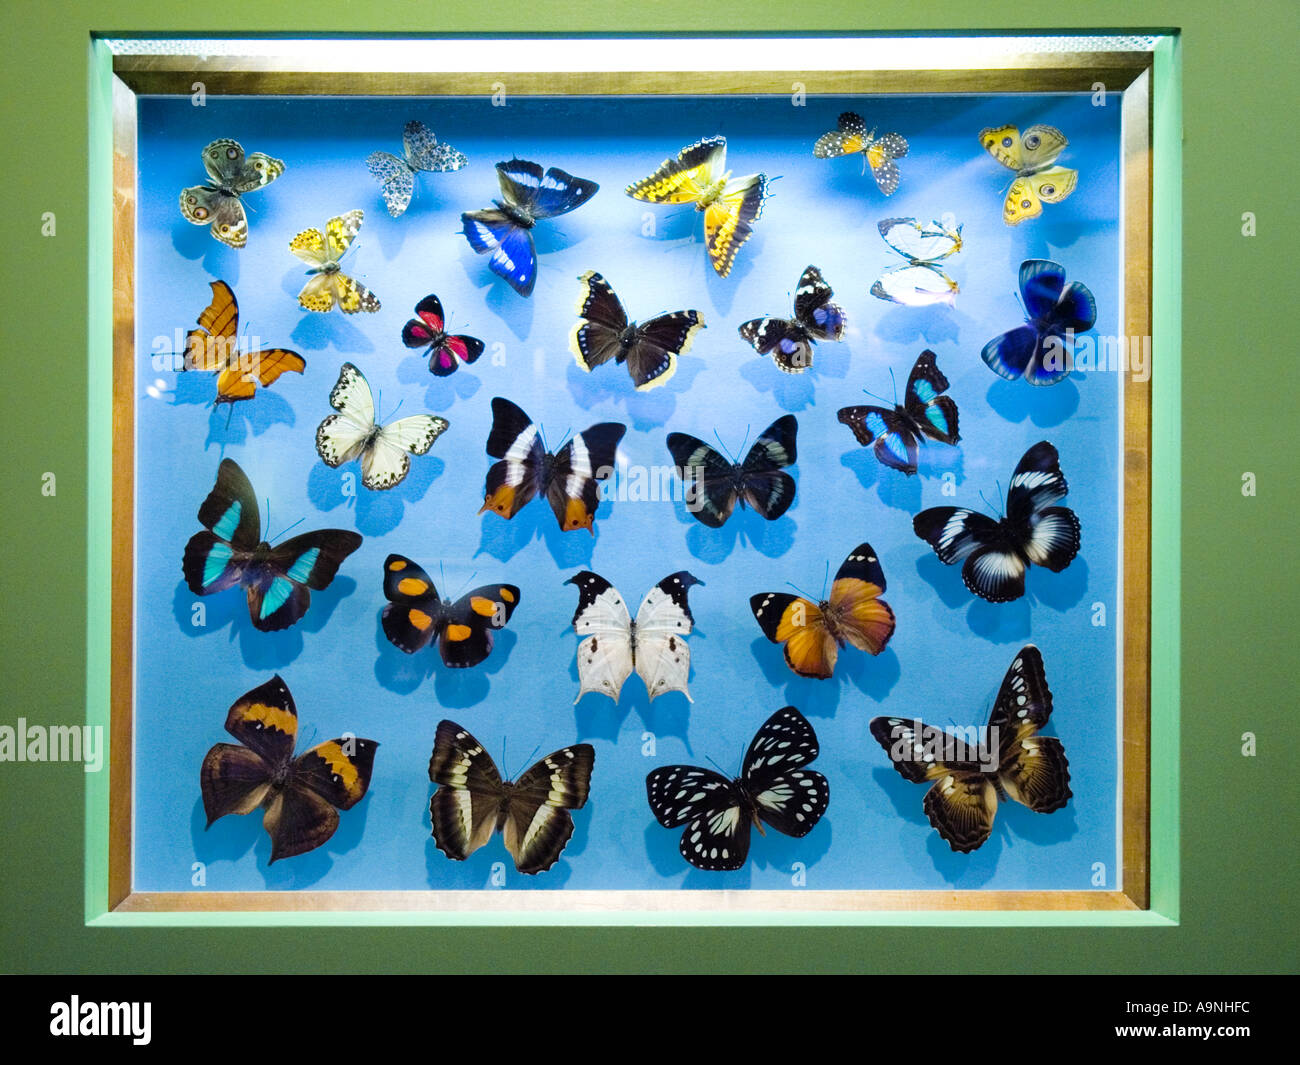 Butterfly butterflies insect animal biology - Stock Image